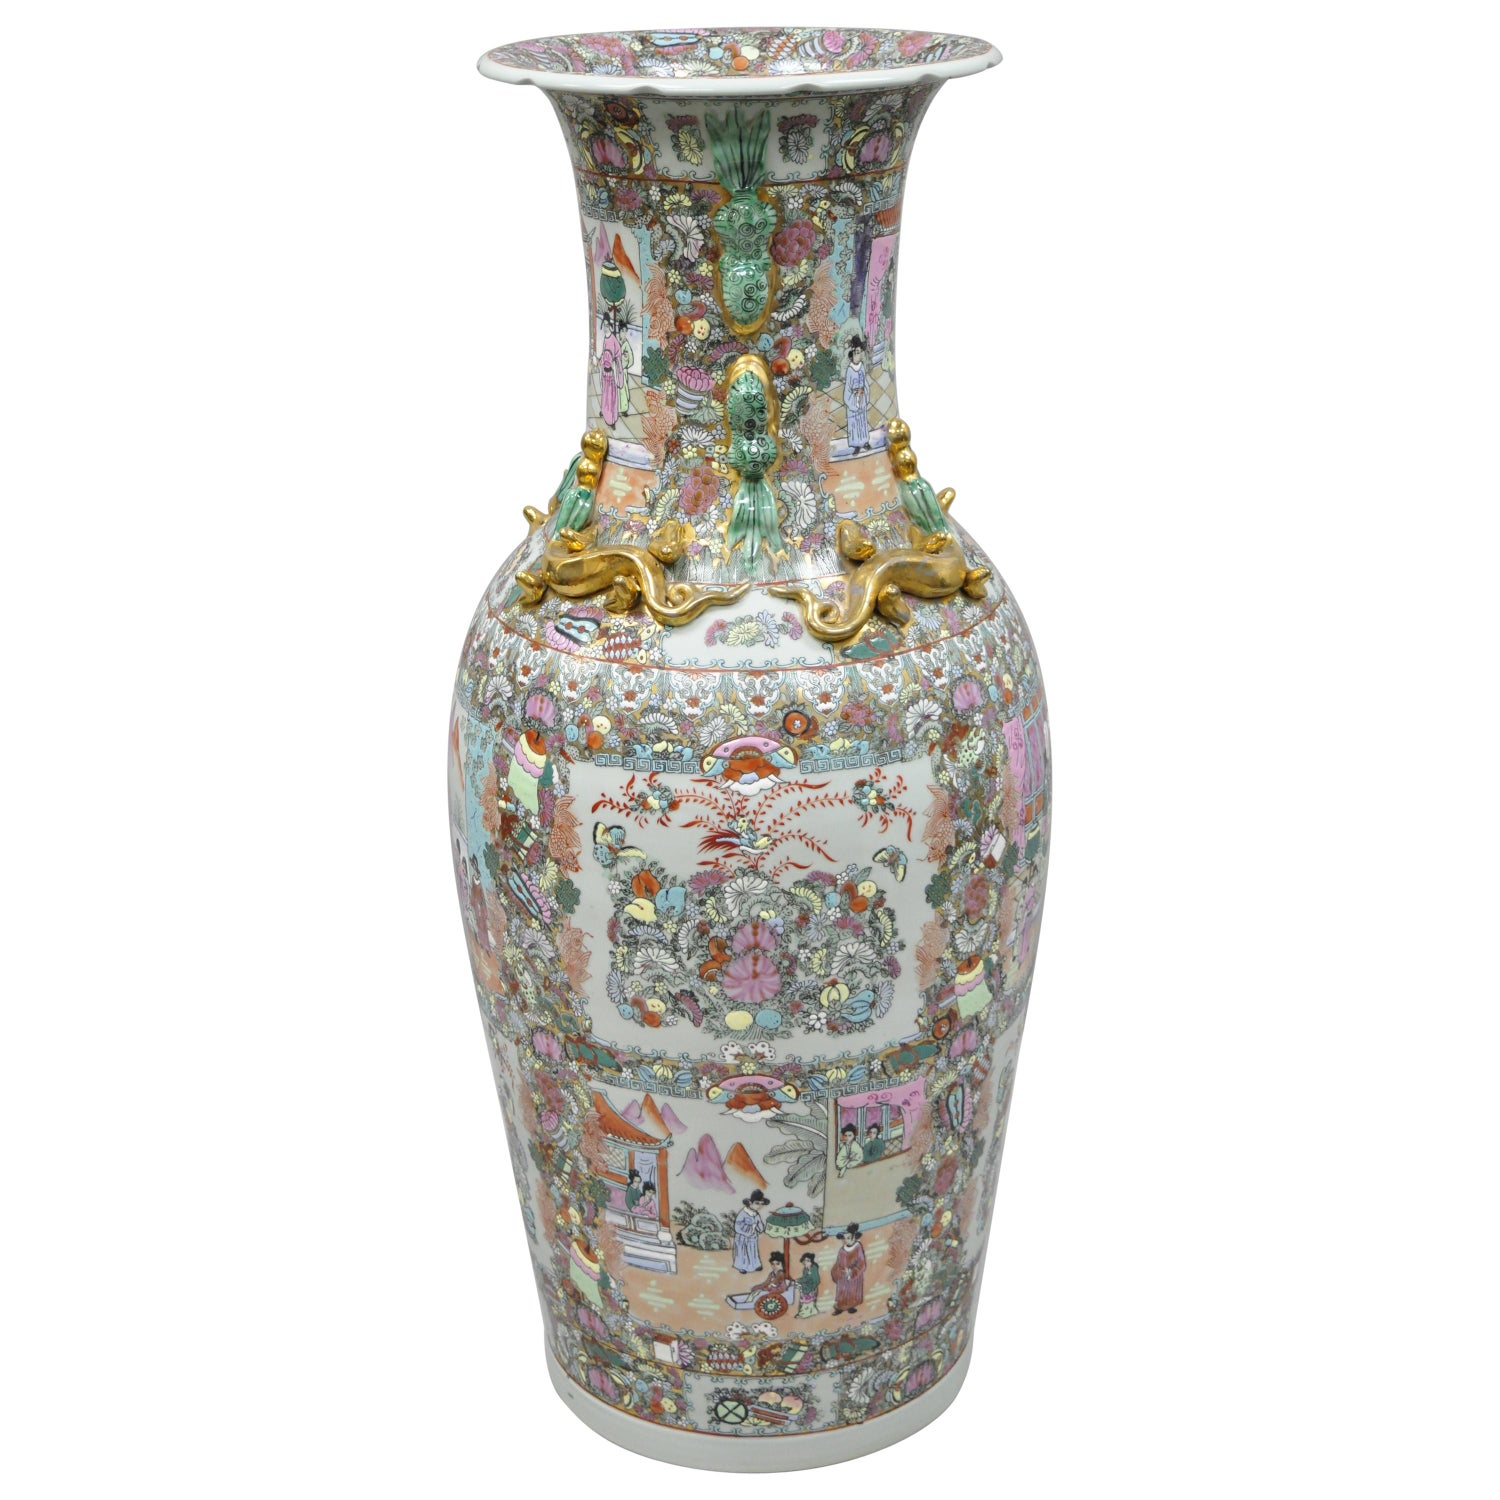 Vintage Rose Medallion Large Tall Chinese Export Porcelain Palace Urn Vase For Sale At 1stdibs